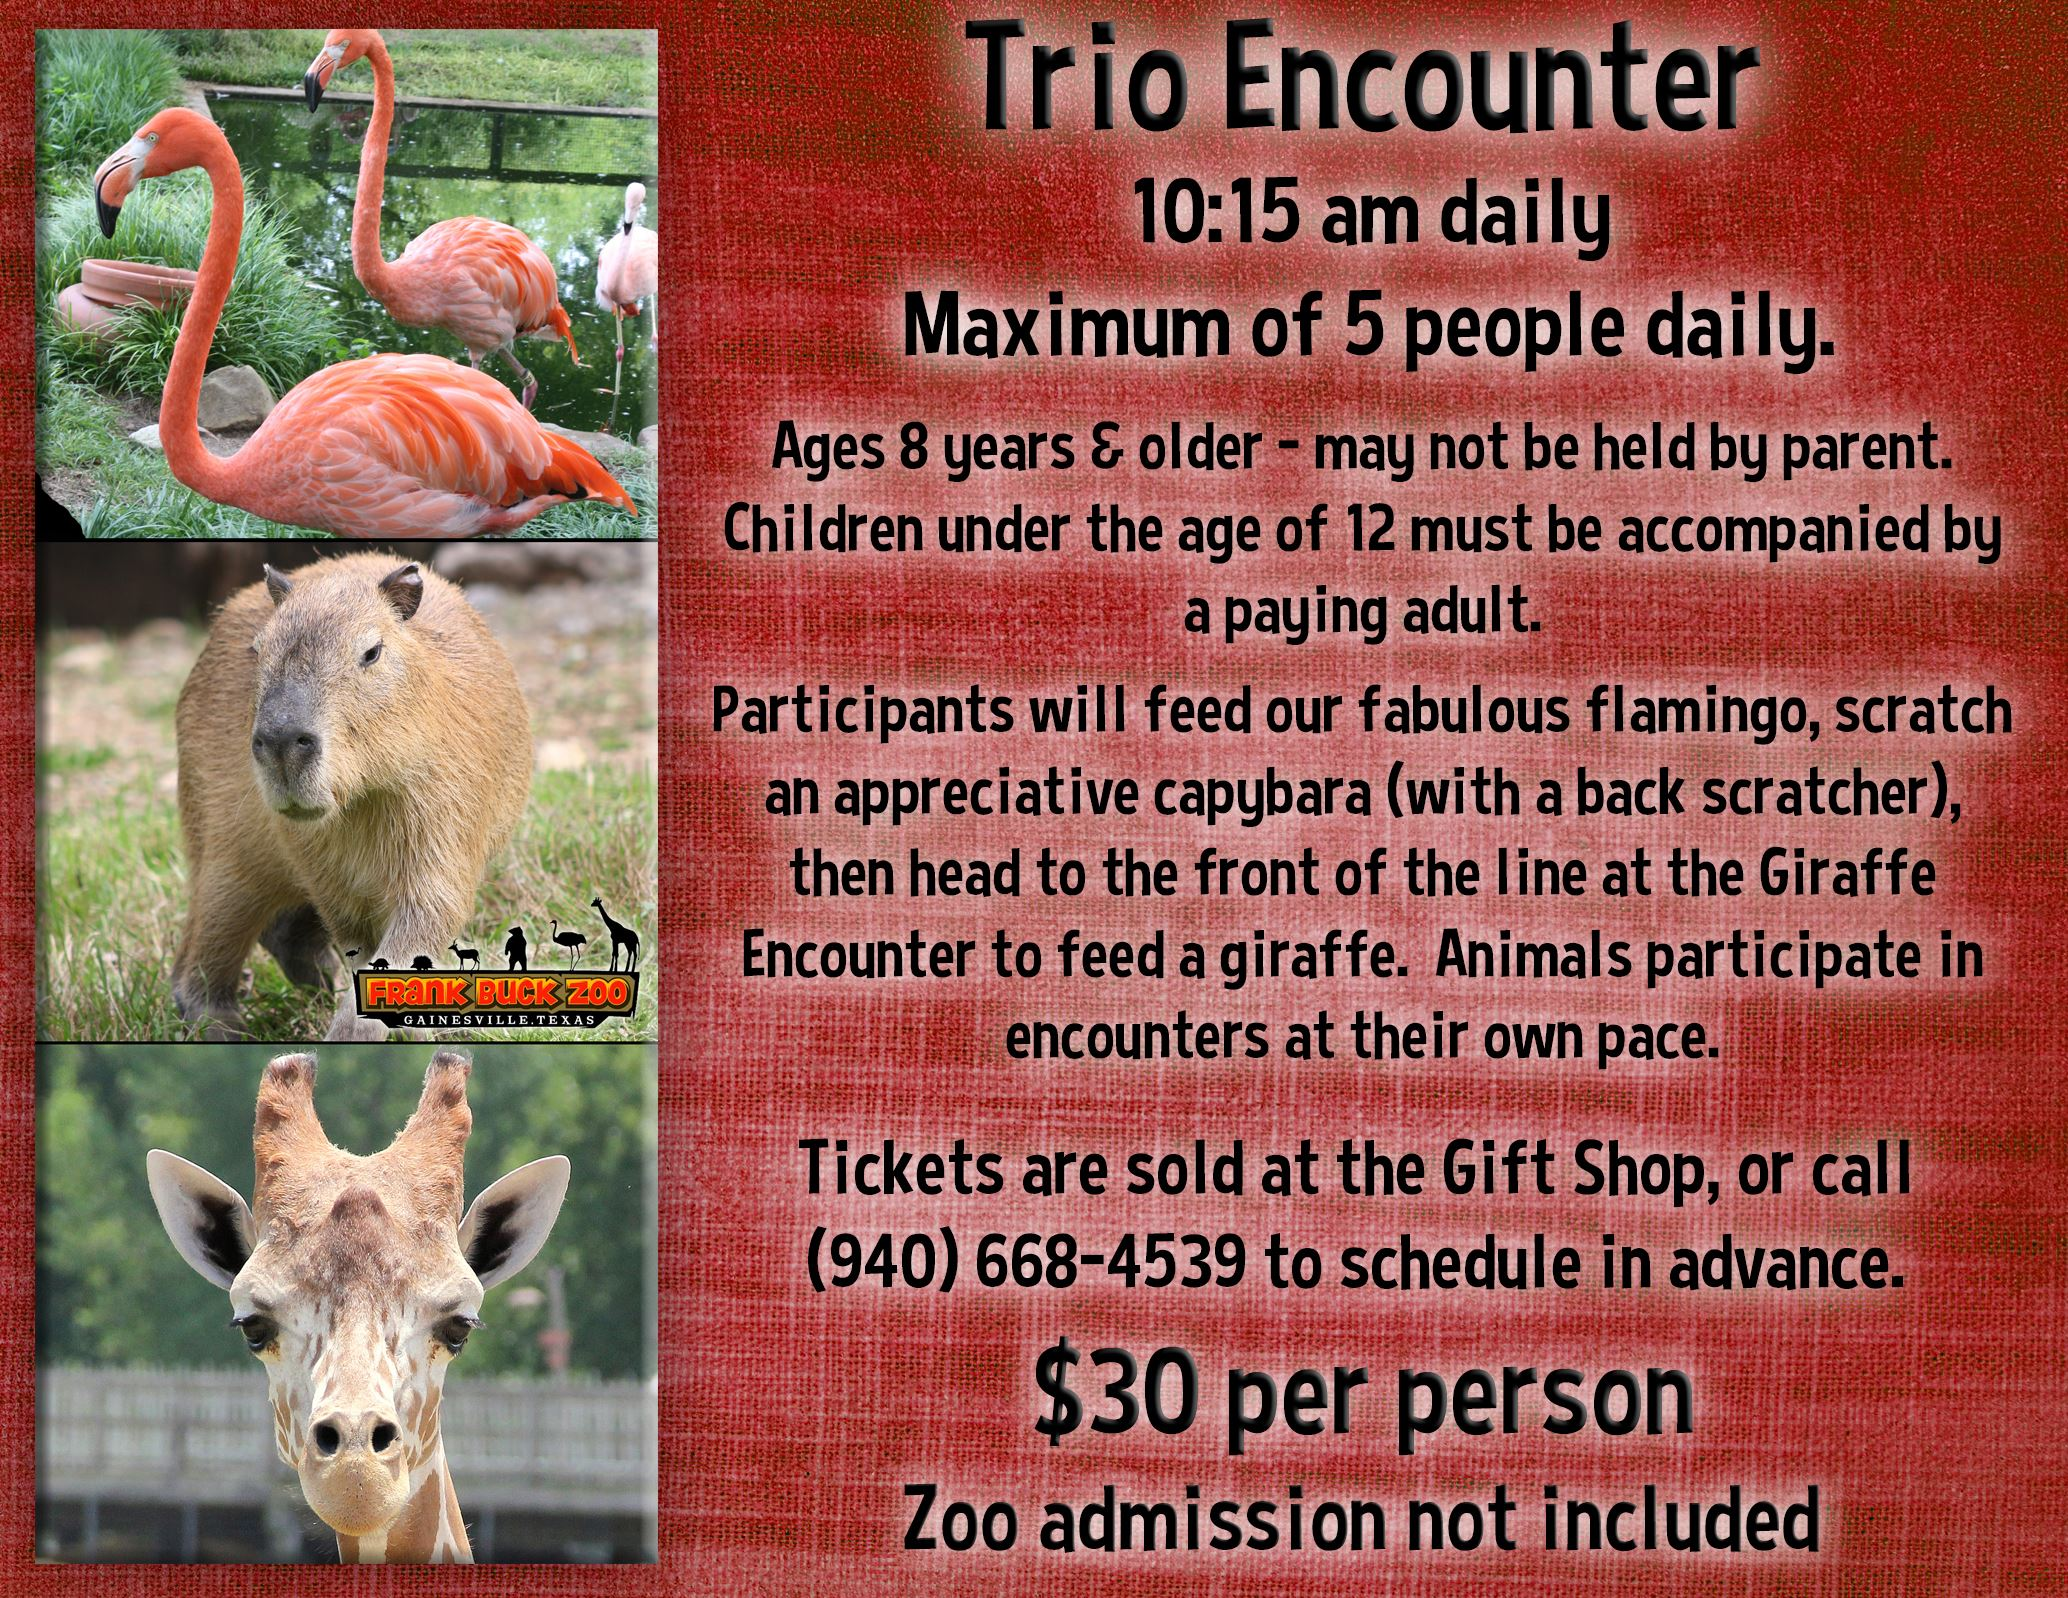 Trio Encounter